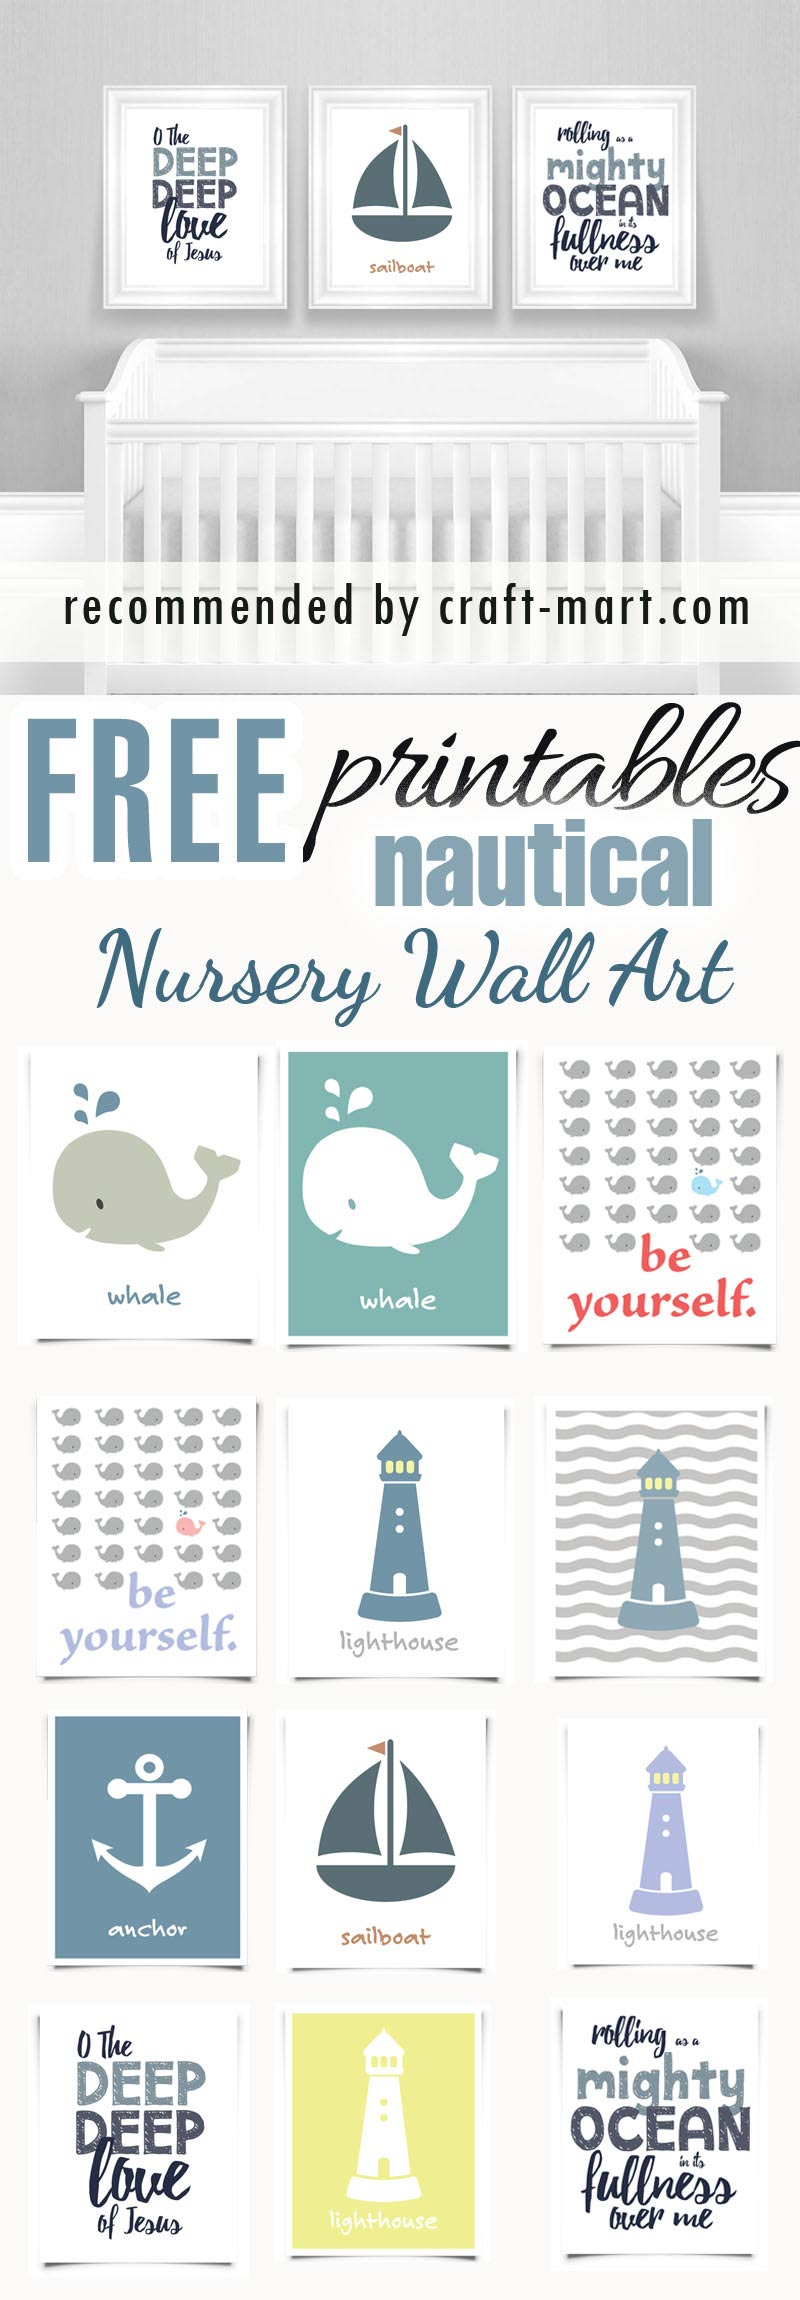 Nautical Nursery Art Prints - free printables #freeprintables #freenurseryprintables #freenurserywallart #cutenurseryprints #nauticalnurseryprintables #freenurseryprints